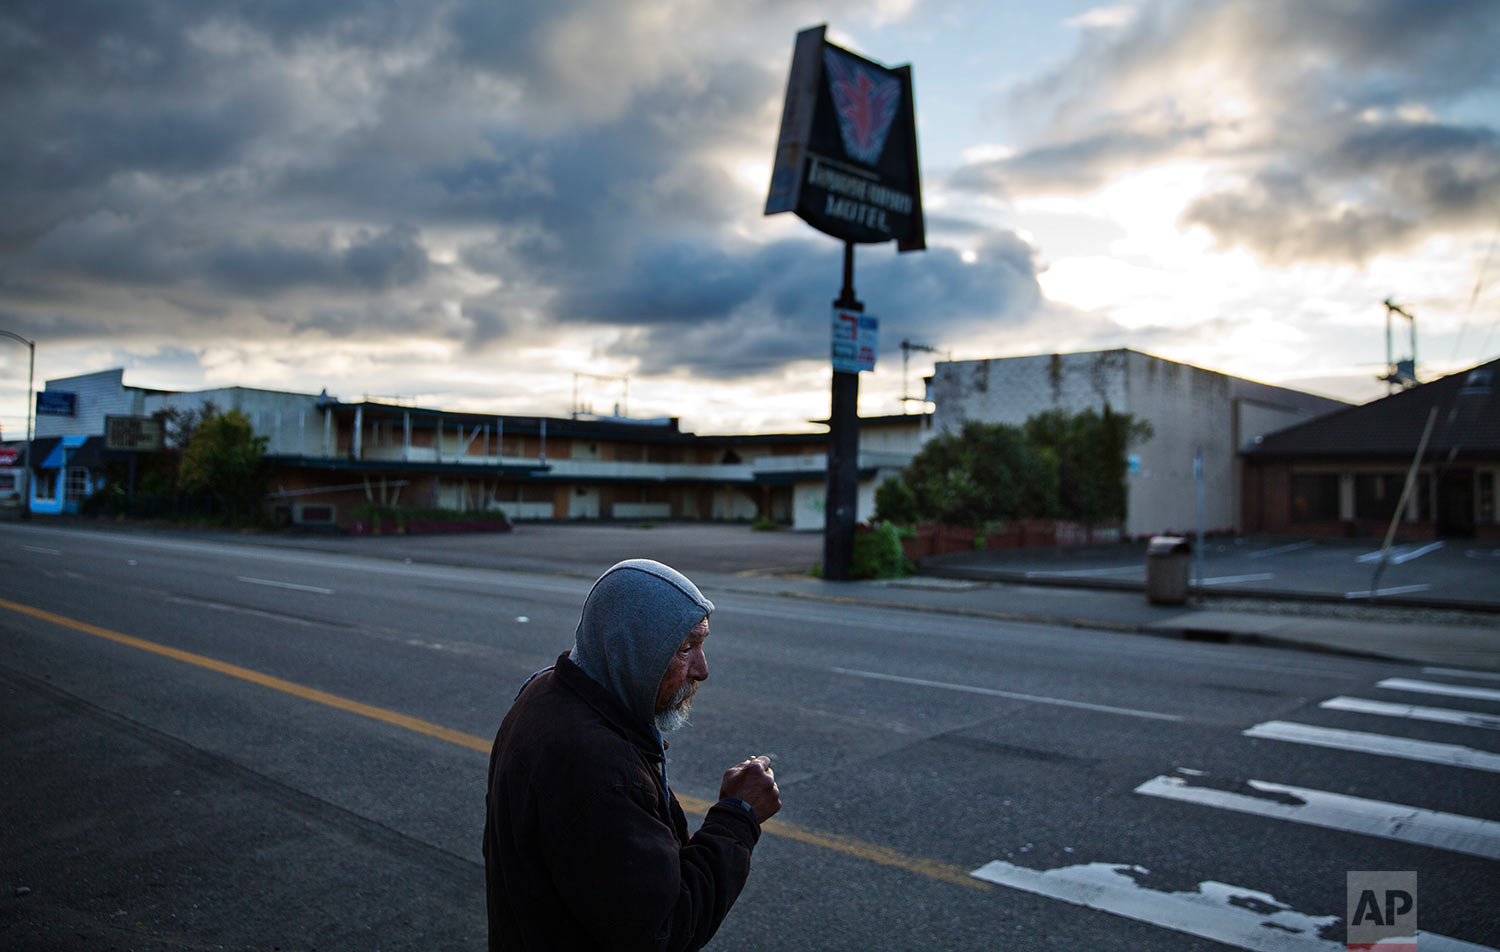 A man walks in front of a dilapidated motel in a rundown section of Aberdeen, Wash., Tuesday, June 13, 2017. The county's population is shrinking, growing sicker, growing poorer as many young and able move away. Just 15 percent of those left behind have college degrees. A quarter of children grow up poor. There is a critical shortage of doctors because it's hard to practice medicine in poor, rural places. (AP Photo/David Goldman)